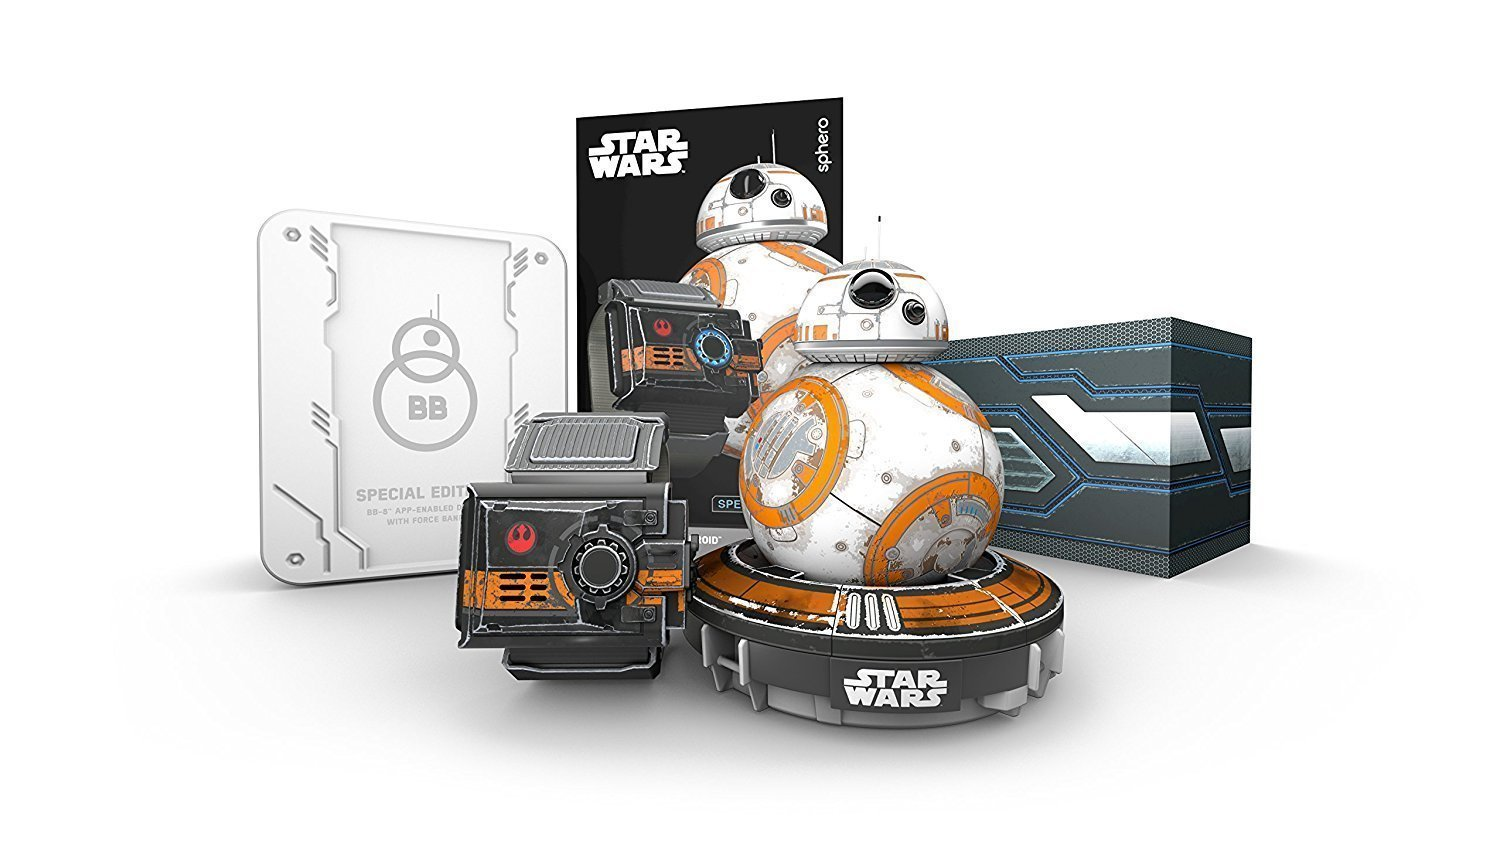 Special Edition Battle-Worn BB-8 by Sphero with Force Band by Sphero (Image #3)